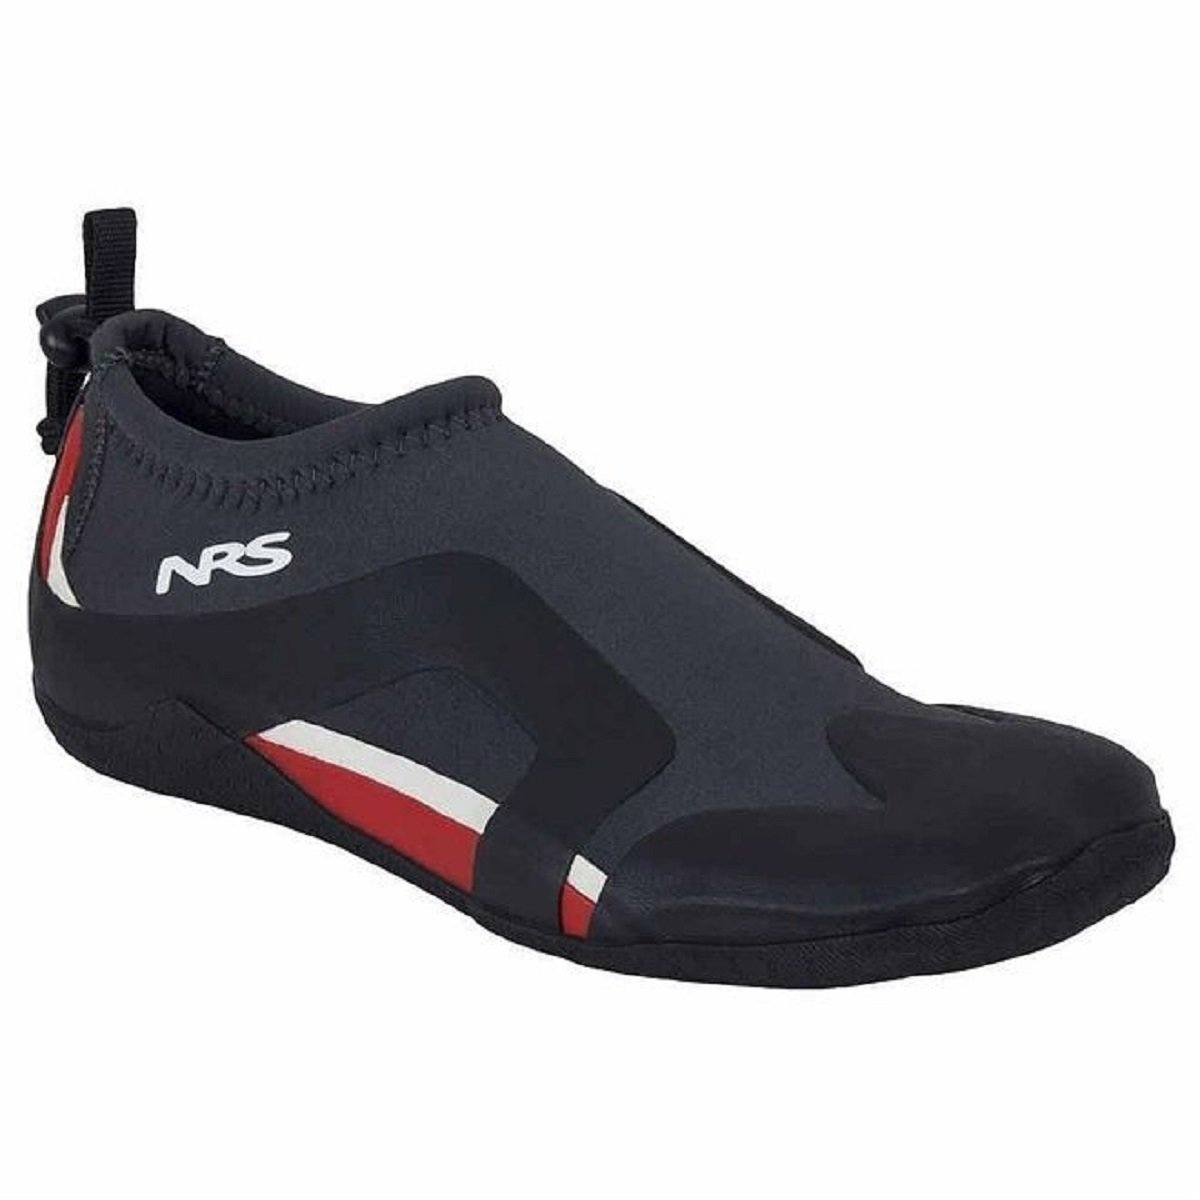 NRS Kinetic Water Shoe, Color: Black/Red, Size: 11 (30042.01.106) by NRS